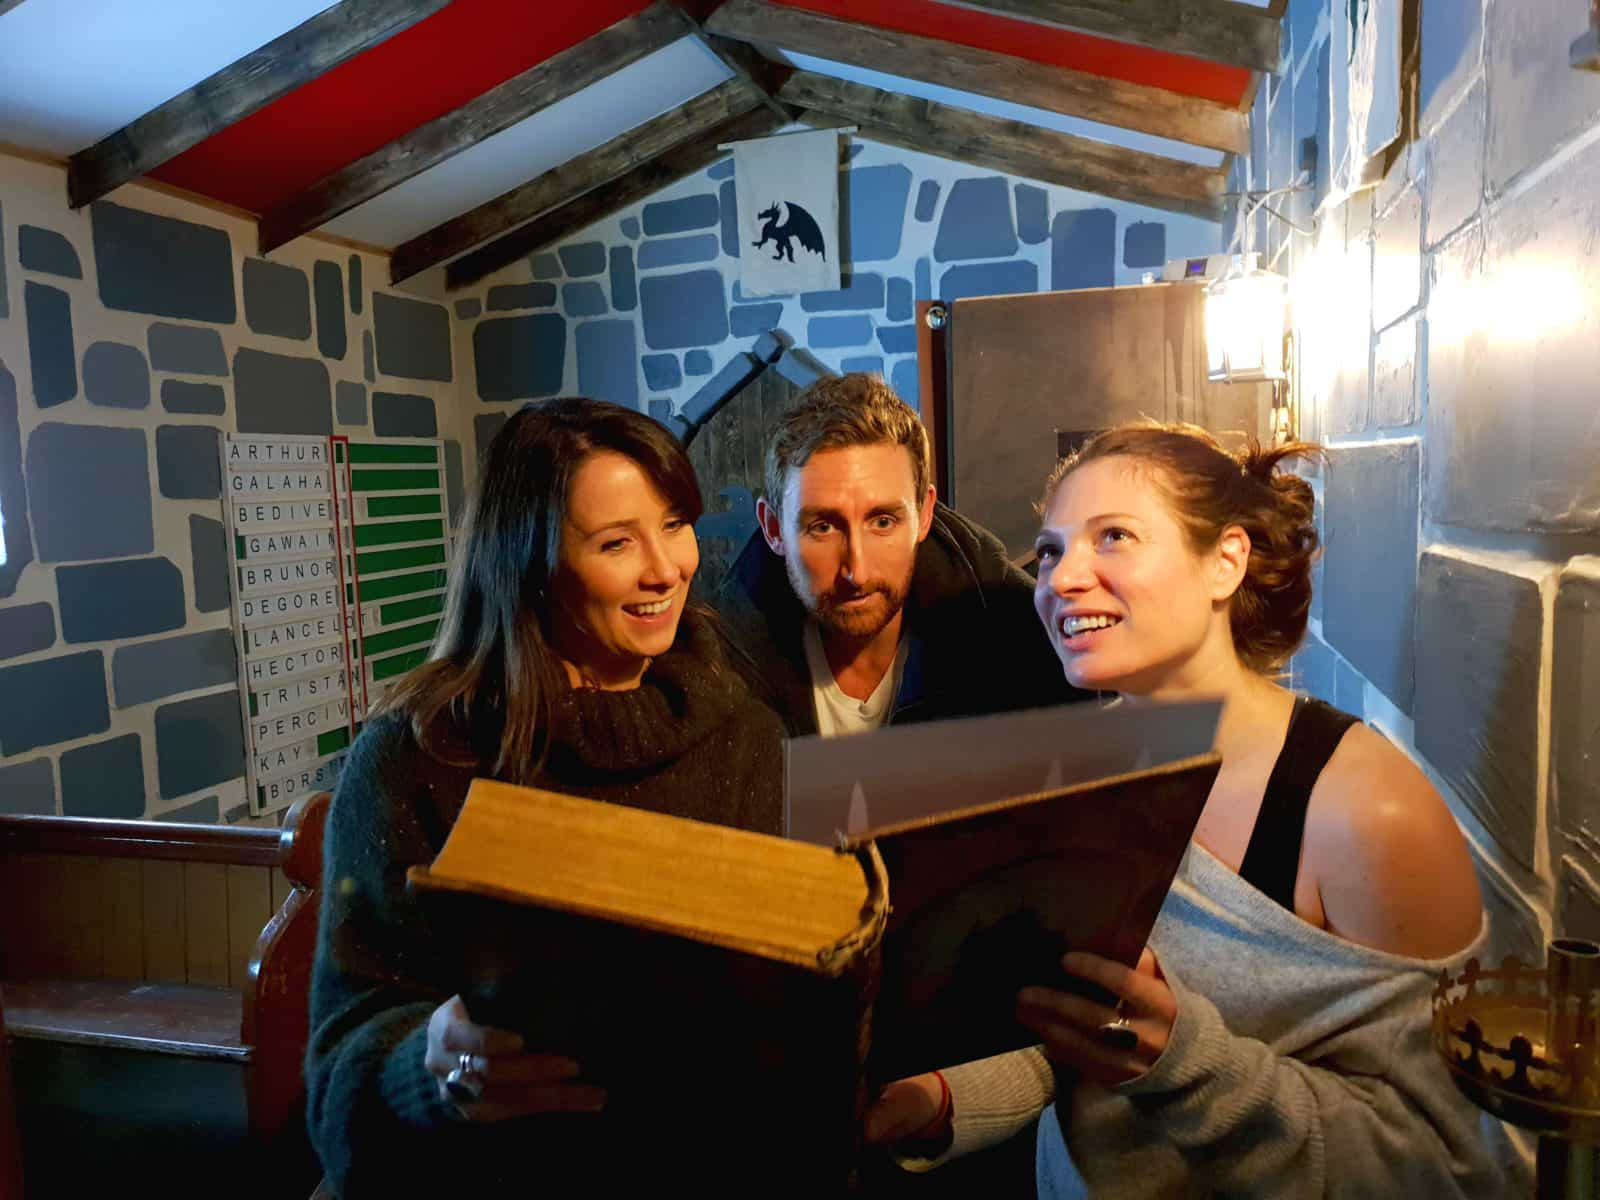 The Medieval Quest is Melbourne's biggest escape room game